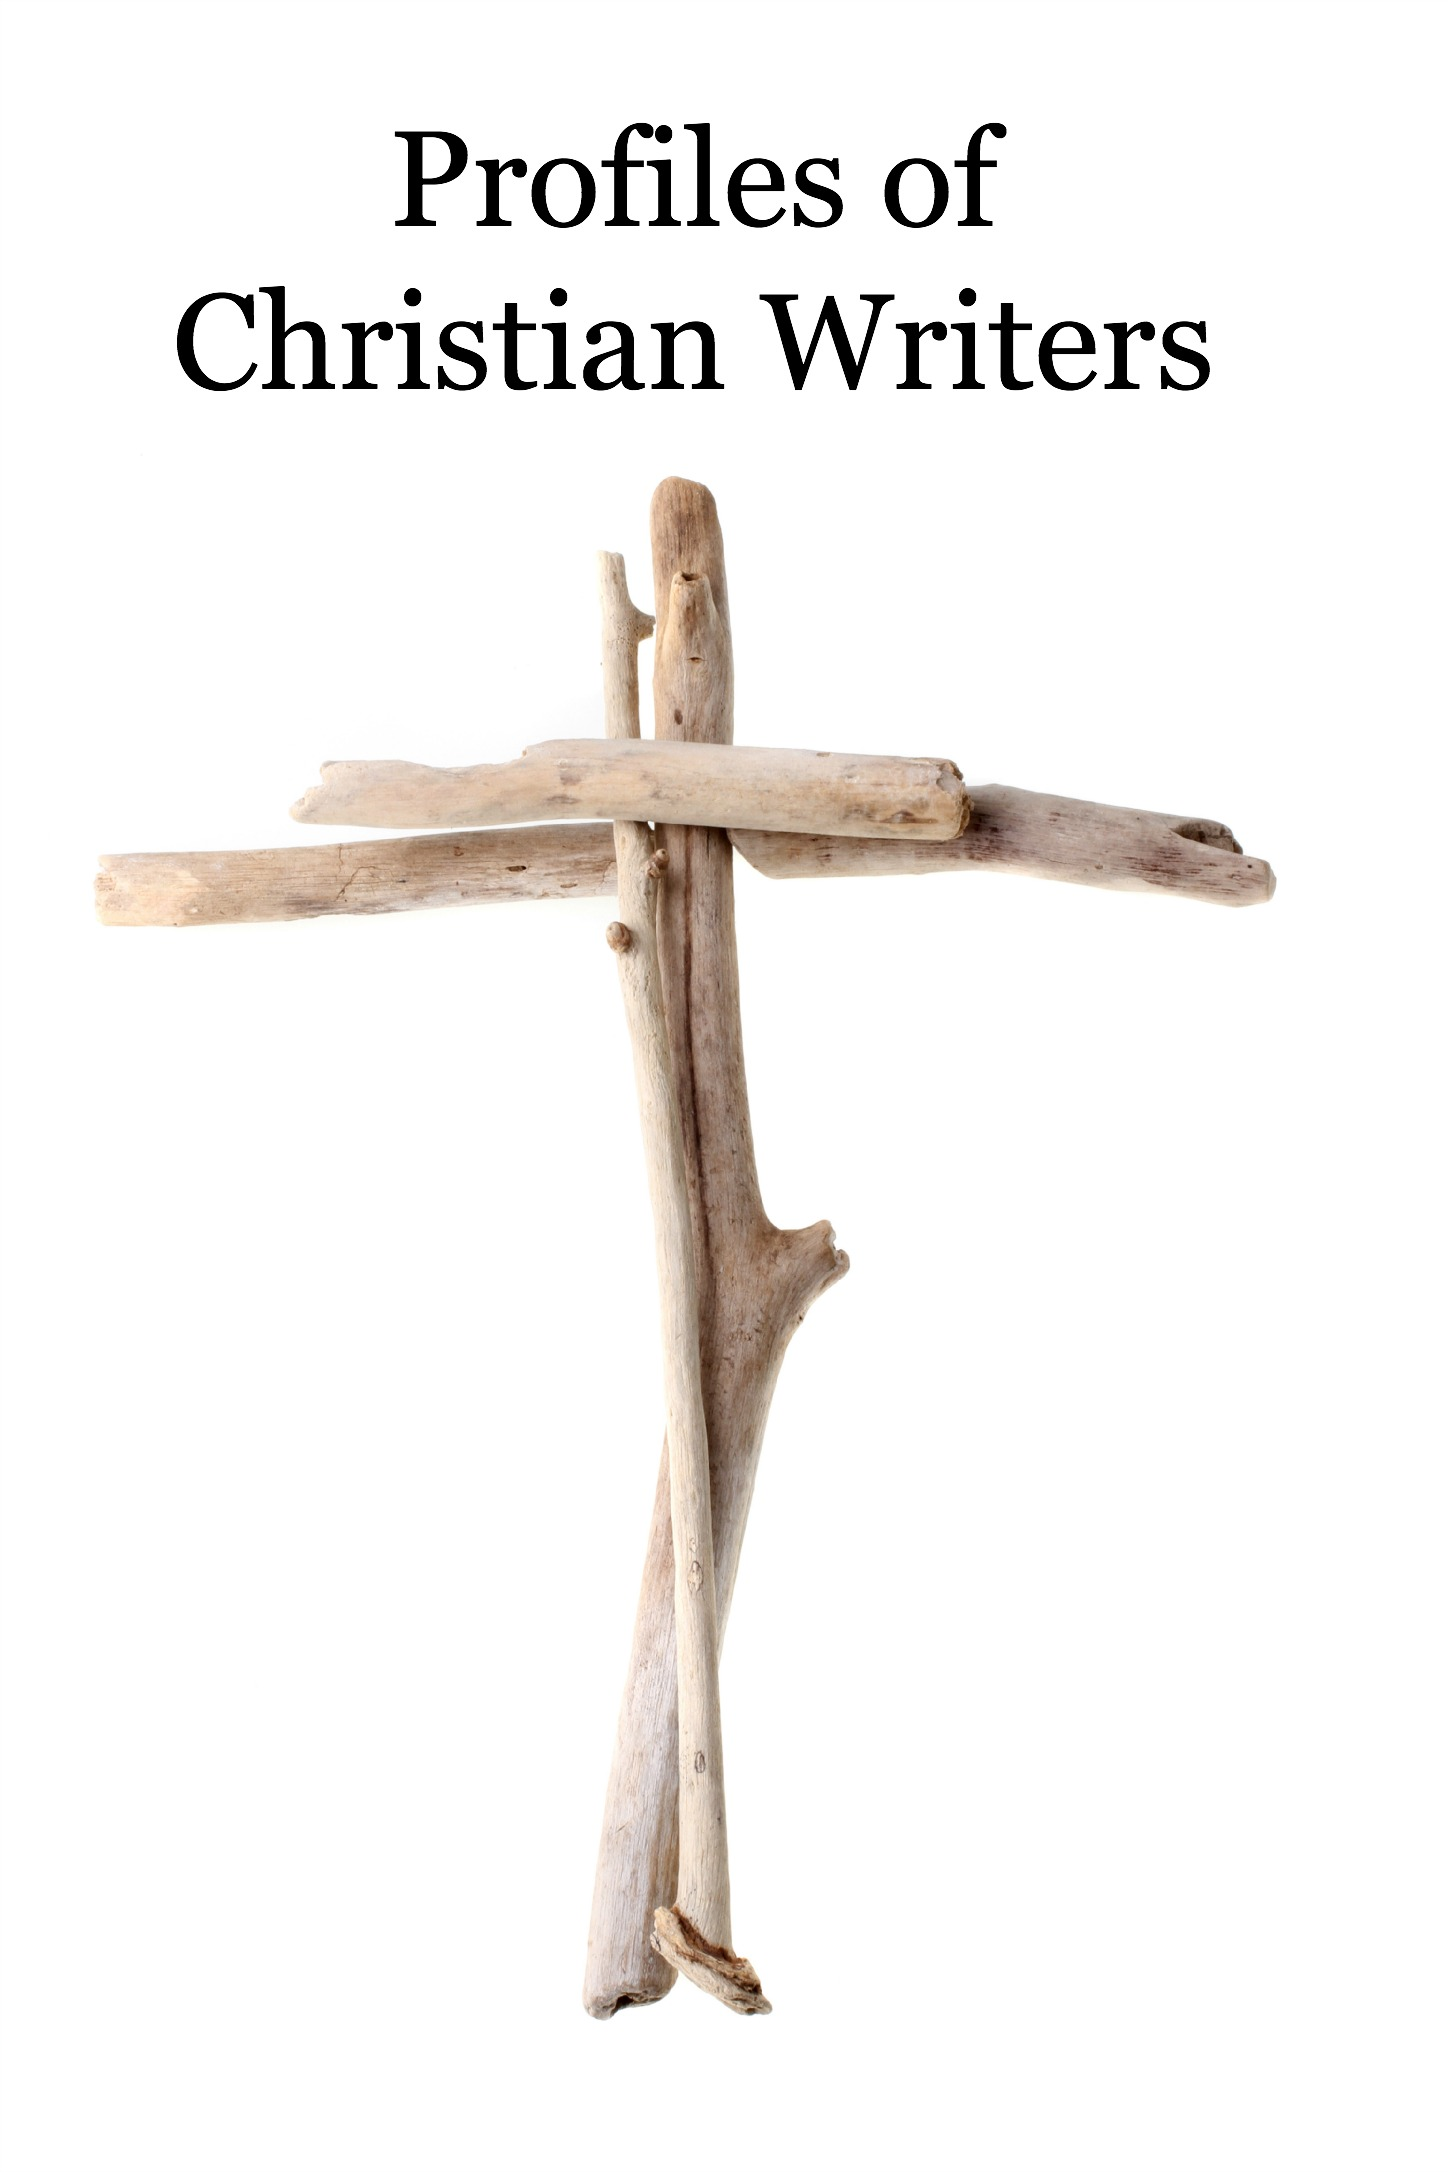 Profiles of Christian Writers